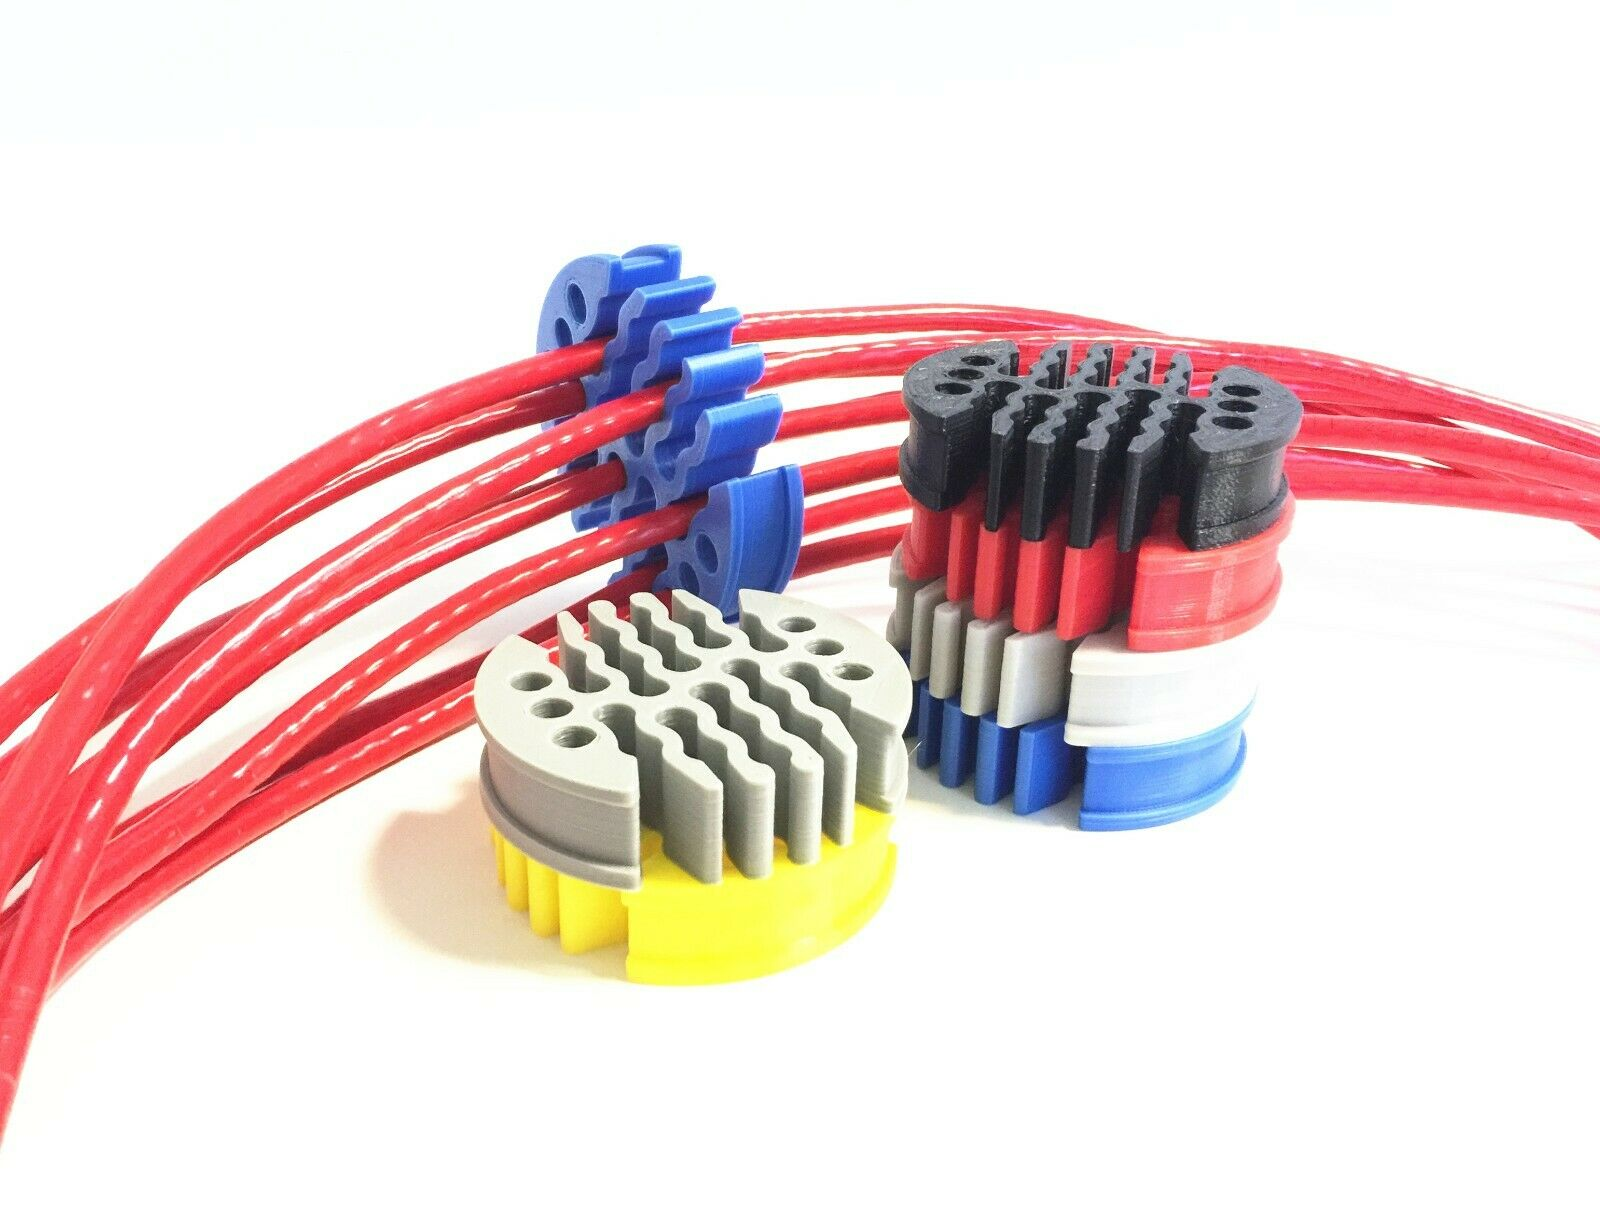 как выглядит 30way 6 Category Network Module Network Cable Comb Tools for Computer Room фото